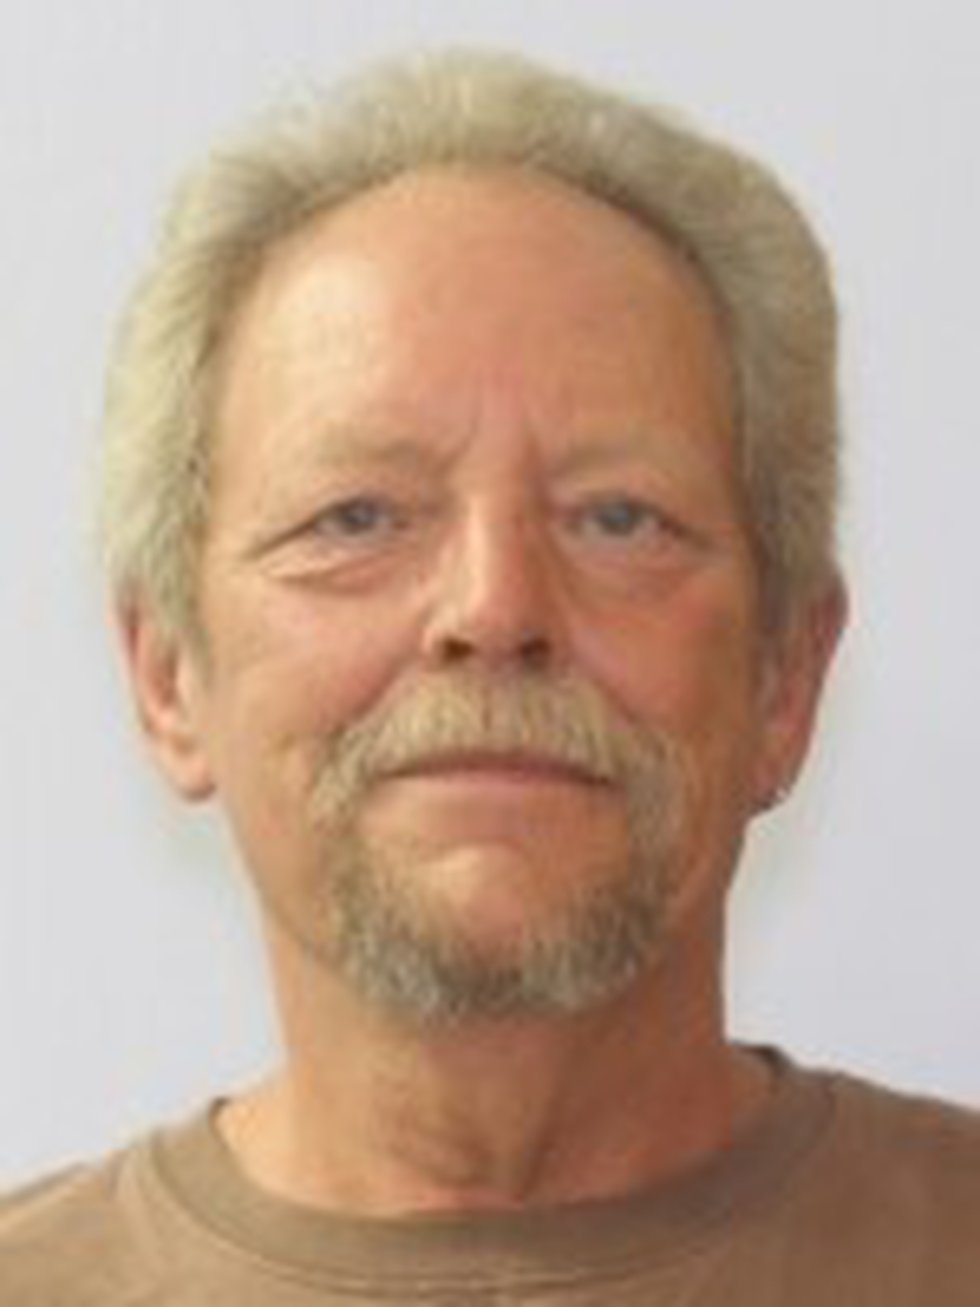 Raymond Ryland, 62, of Wadsworth arrested for answering an on-line advertisement offering...